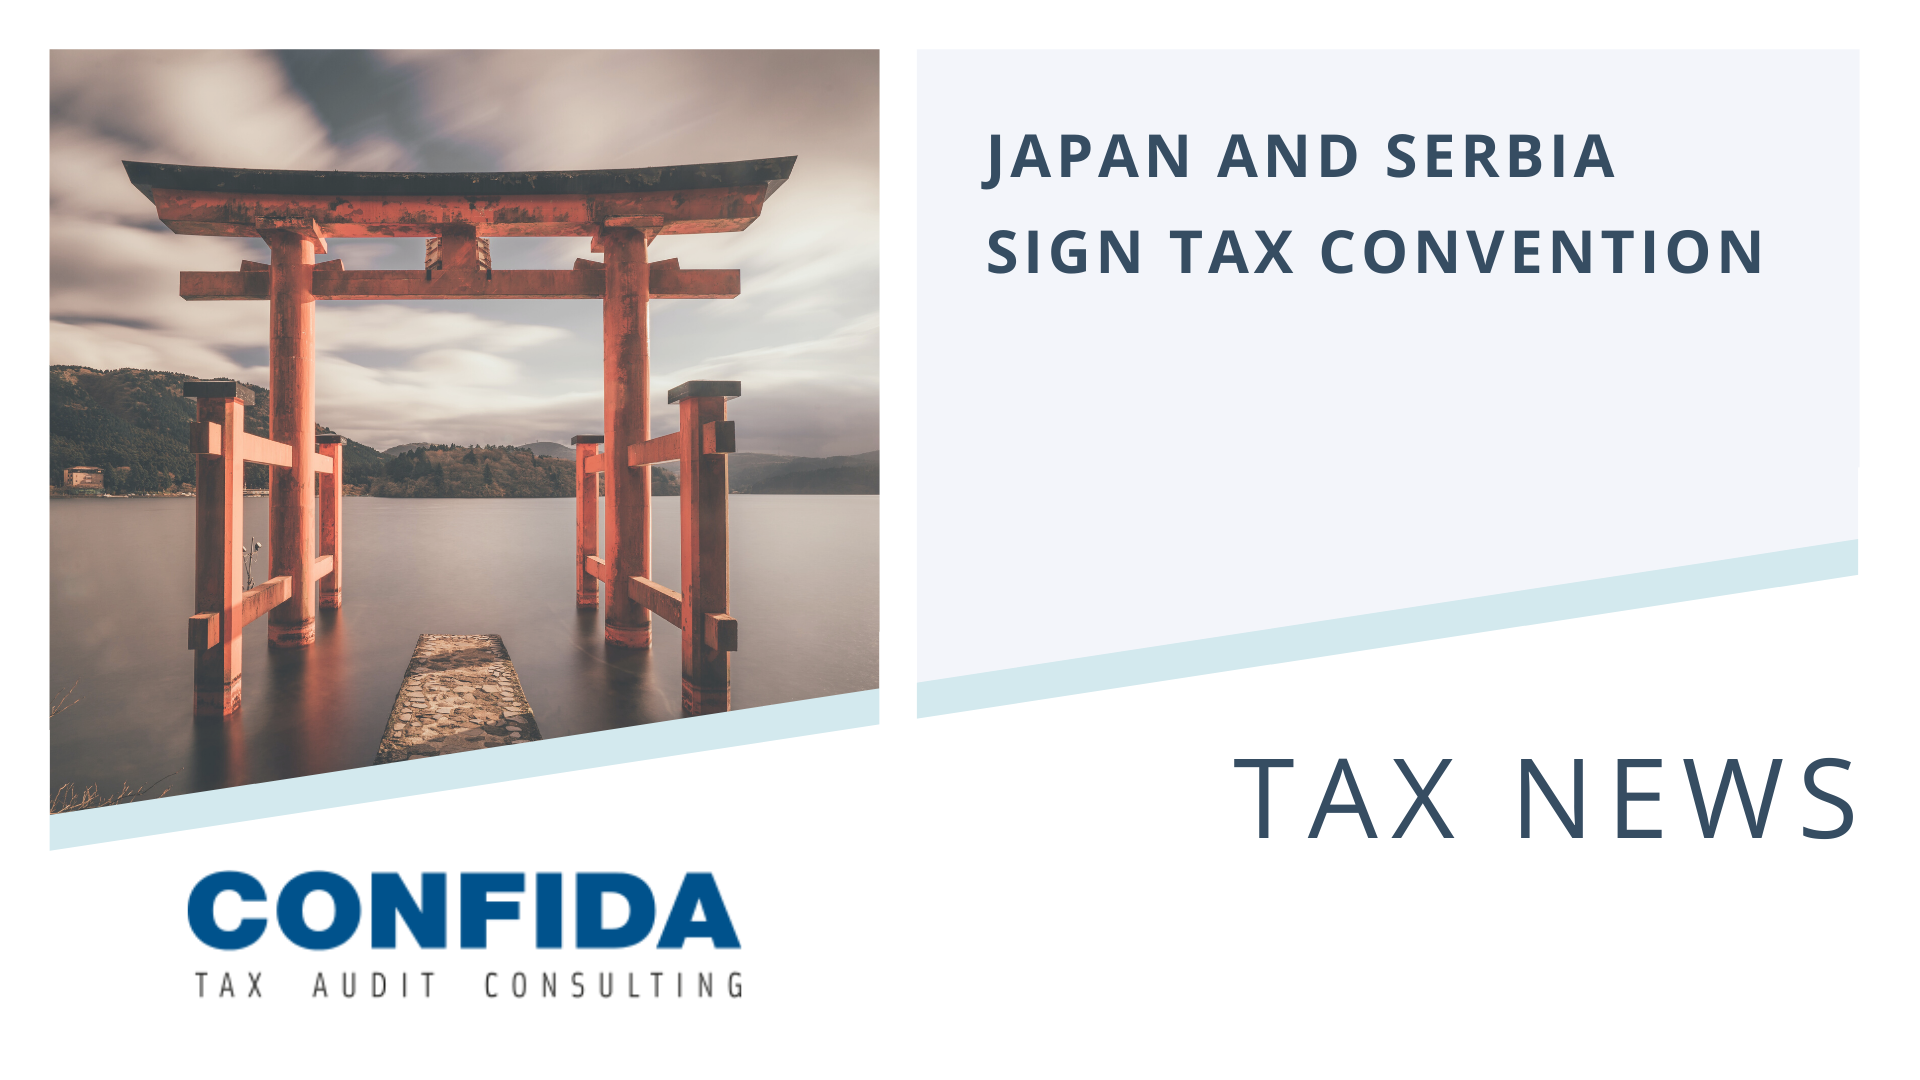 Japan and Serbia Sign Tax Convention